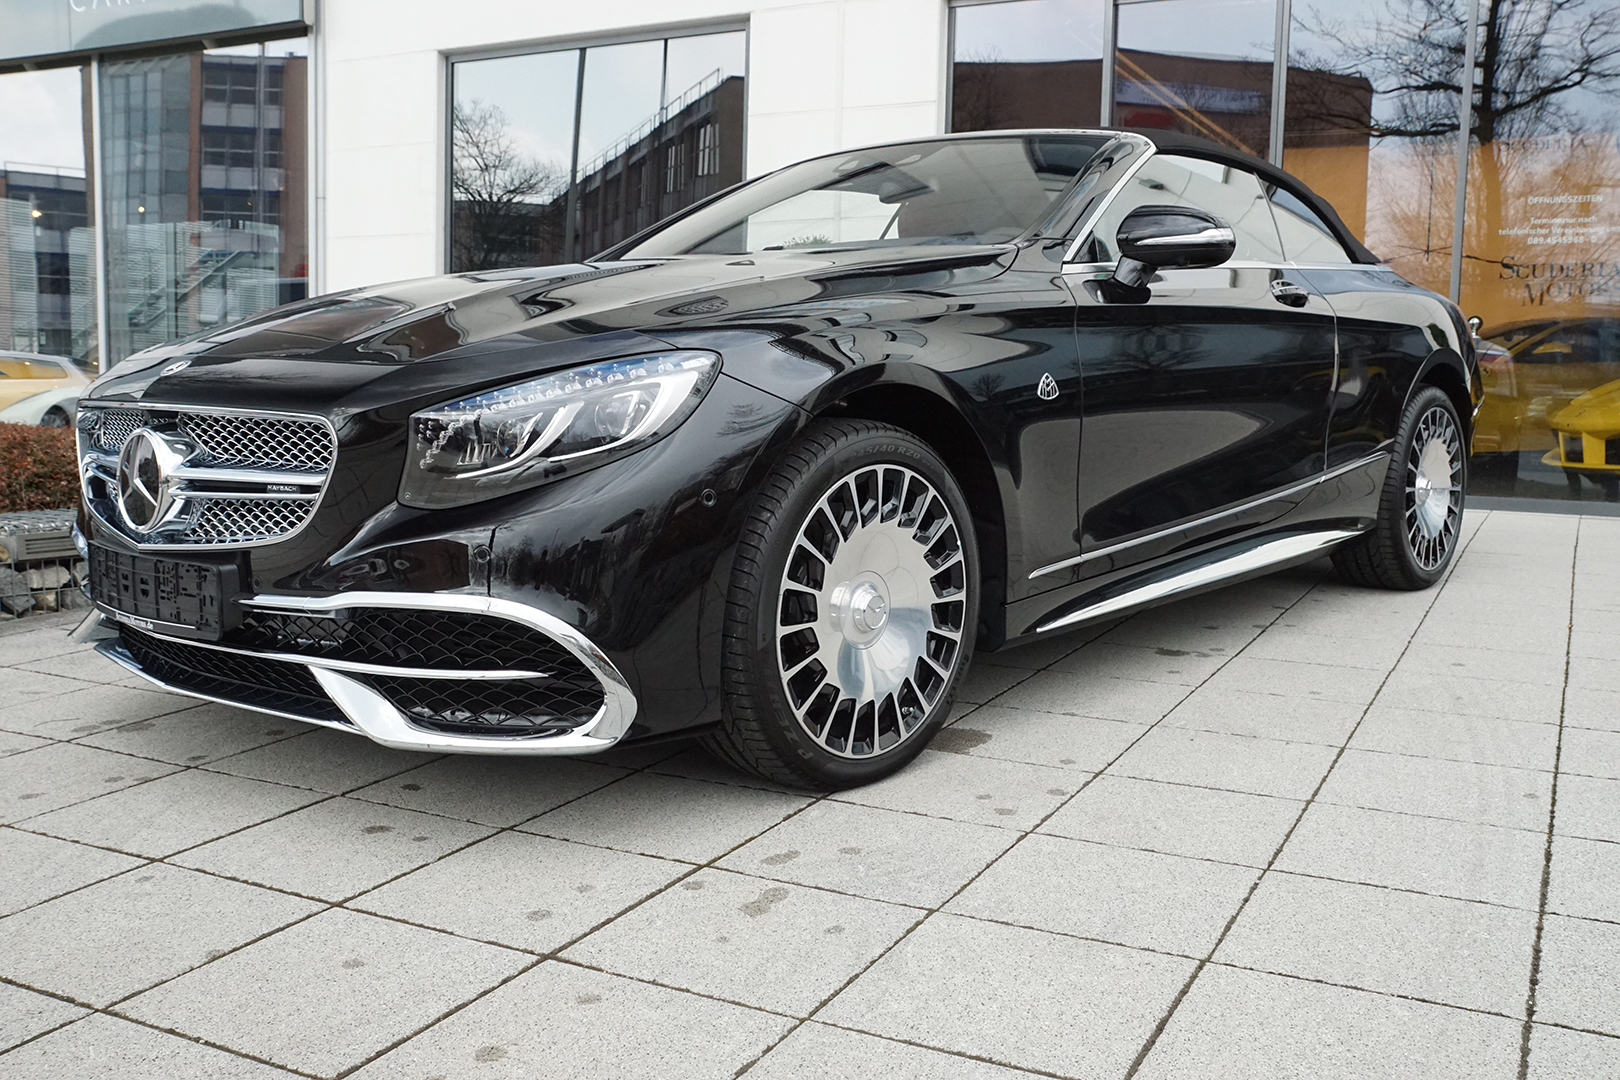 AIL Mercedes-Benz Maybach S 650 V12 Cabriolet 8